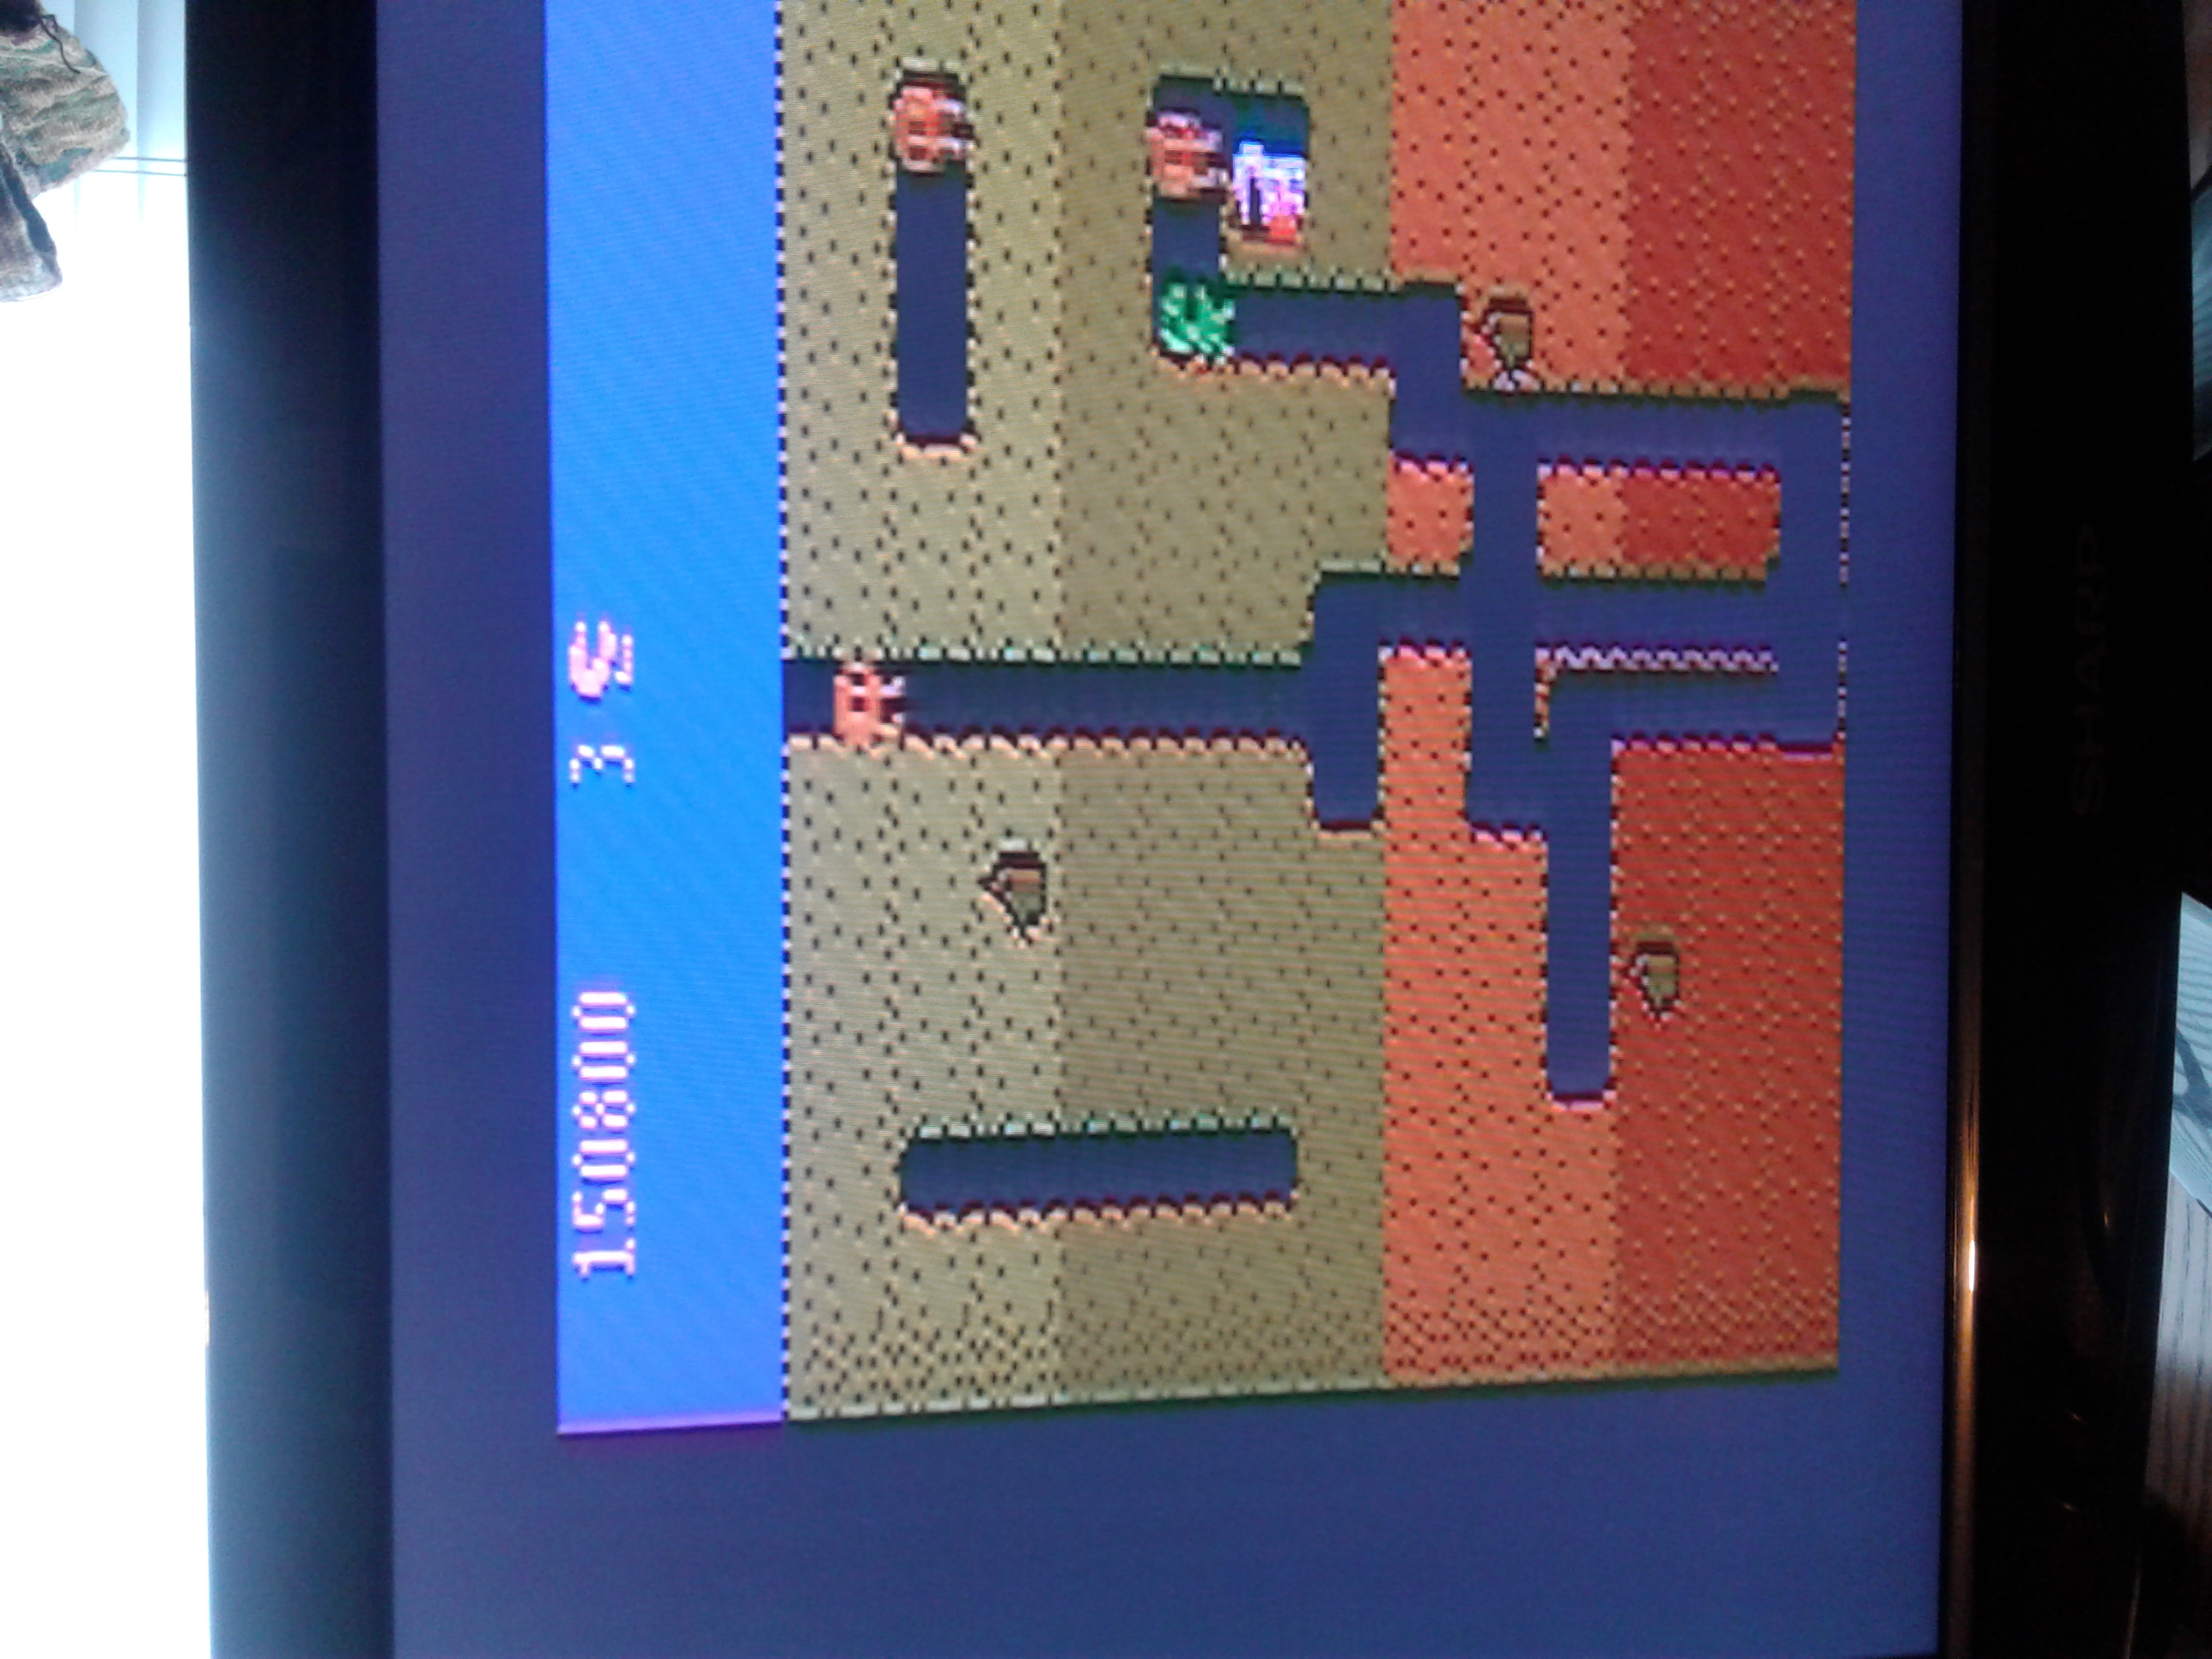 Dig Dug: Carrot Start 150,800 points